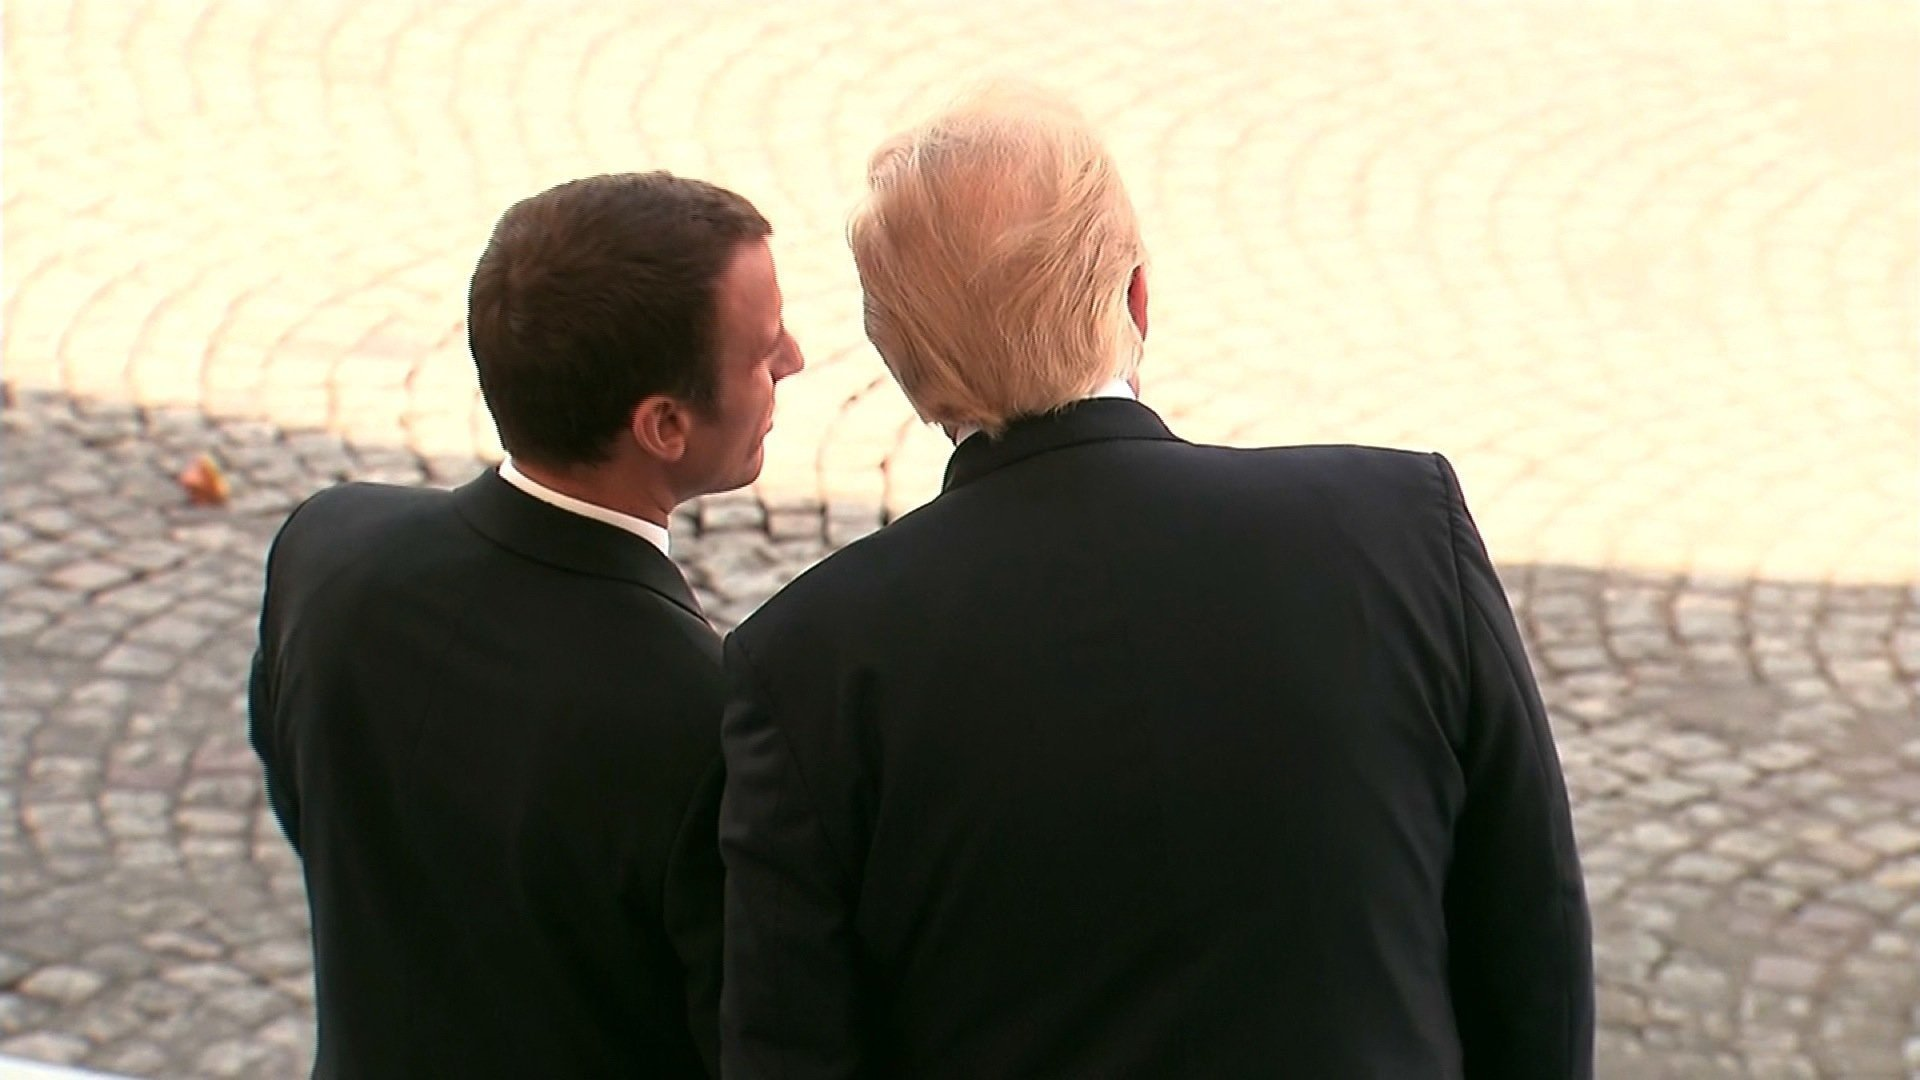 President Scowls During French Army's Amazing Daft Punk Tribute